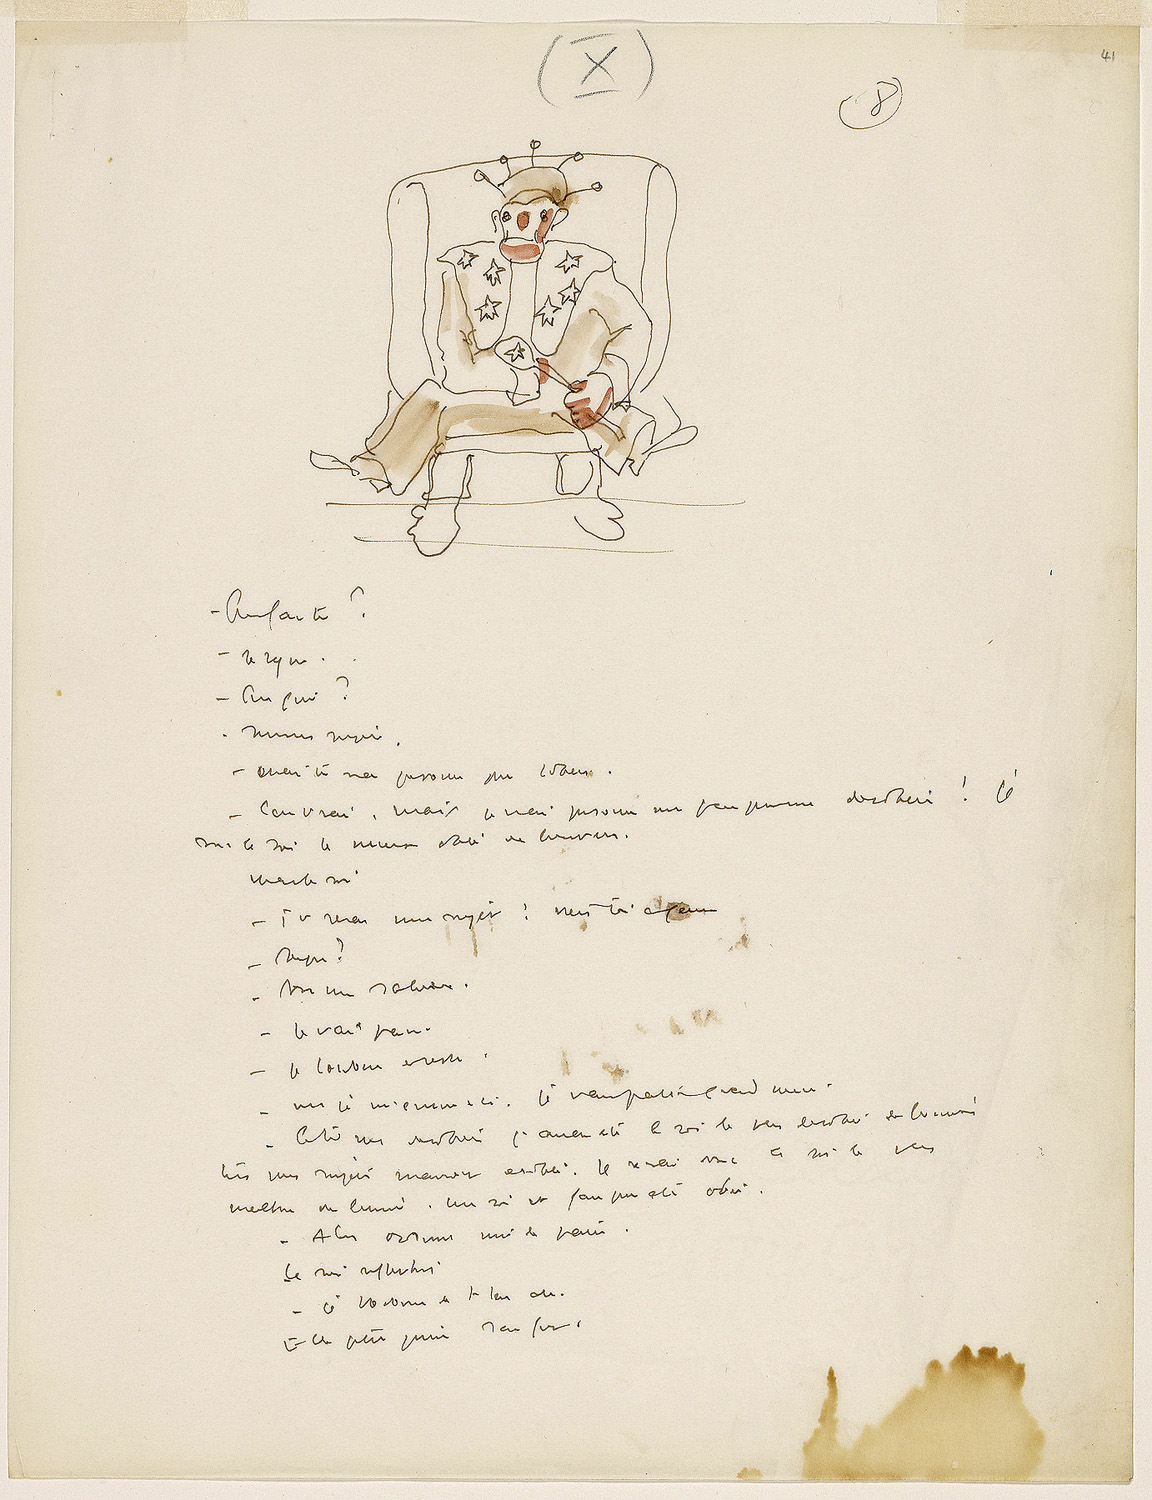 An early manuscript for The Little Prince by Antoine Saint-Exupery.